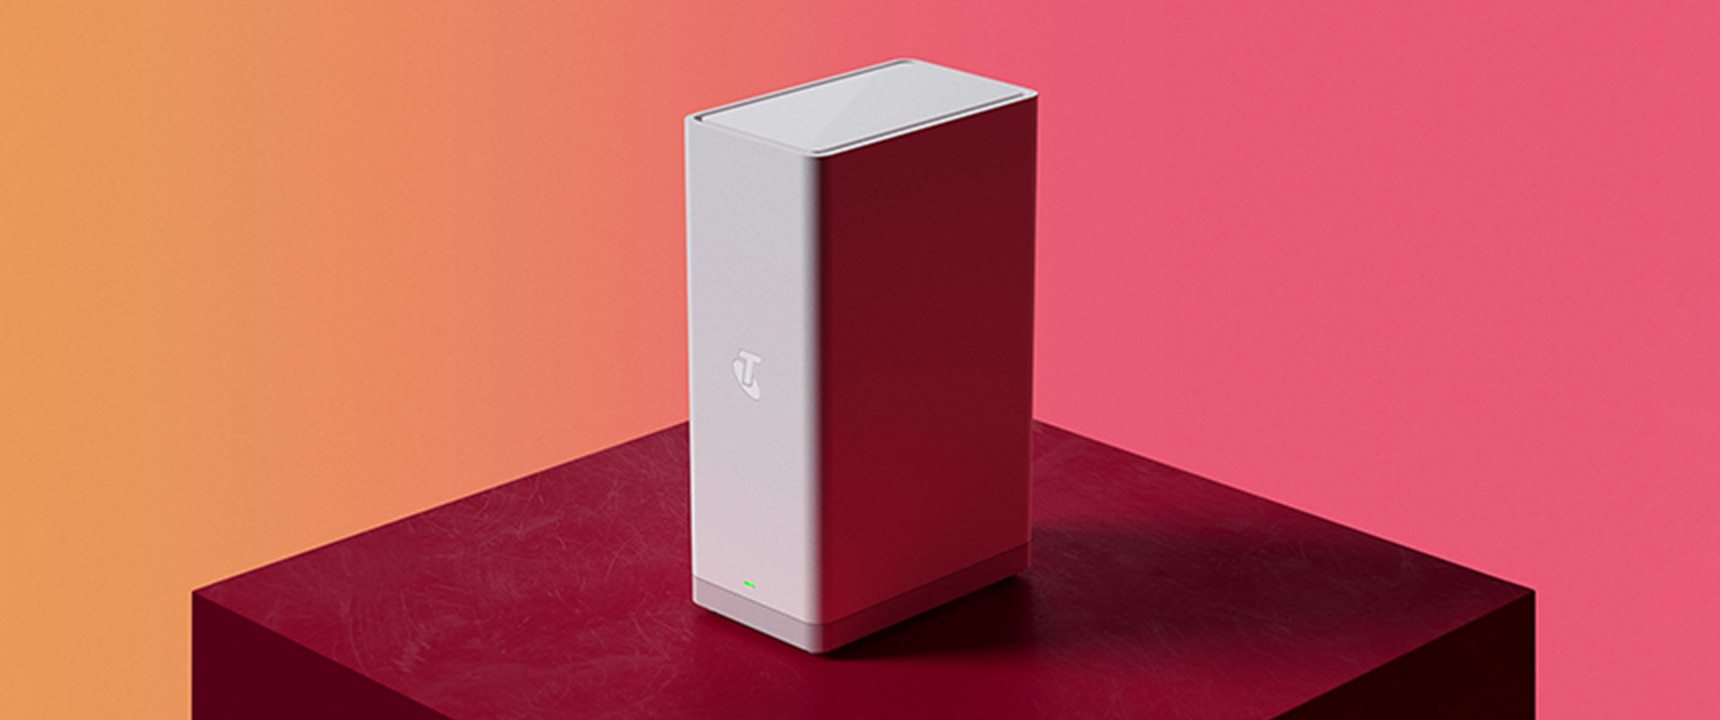 Connect to the internet with the Telstra Smart Modem